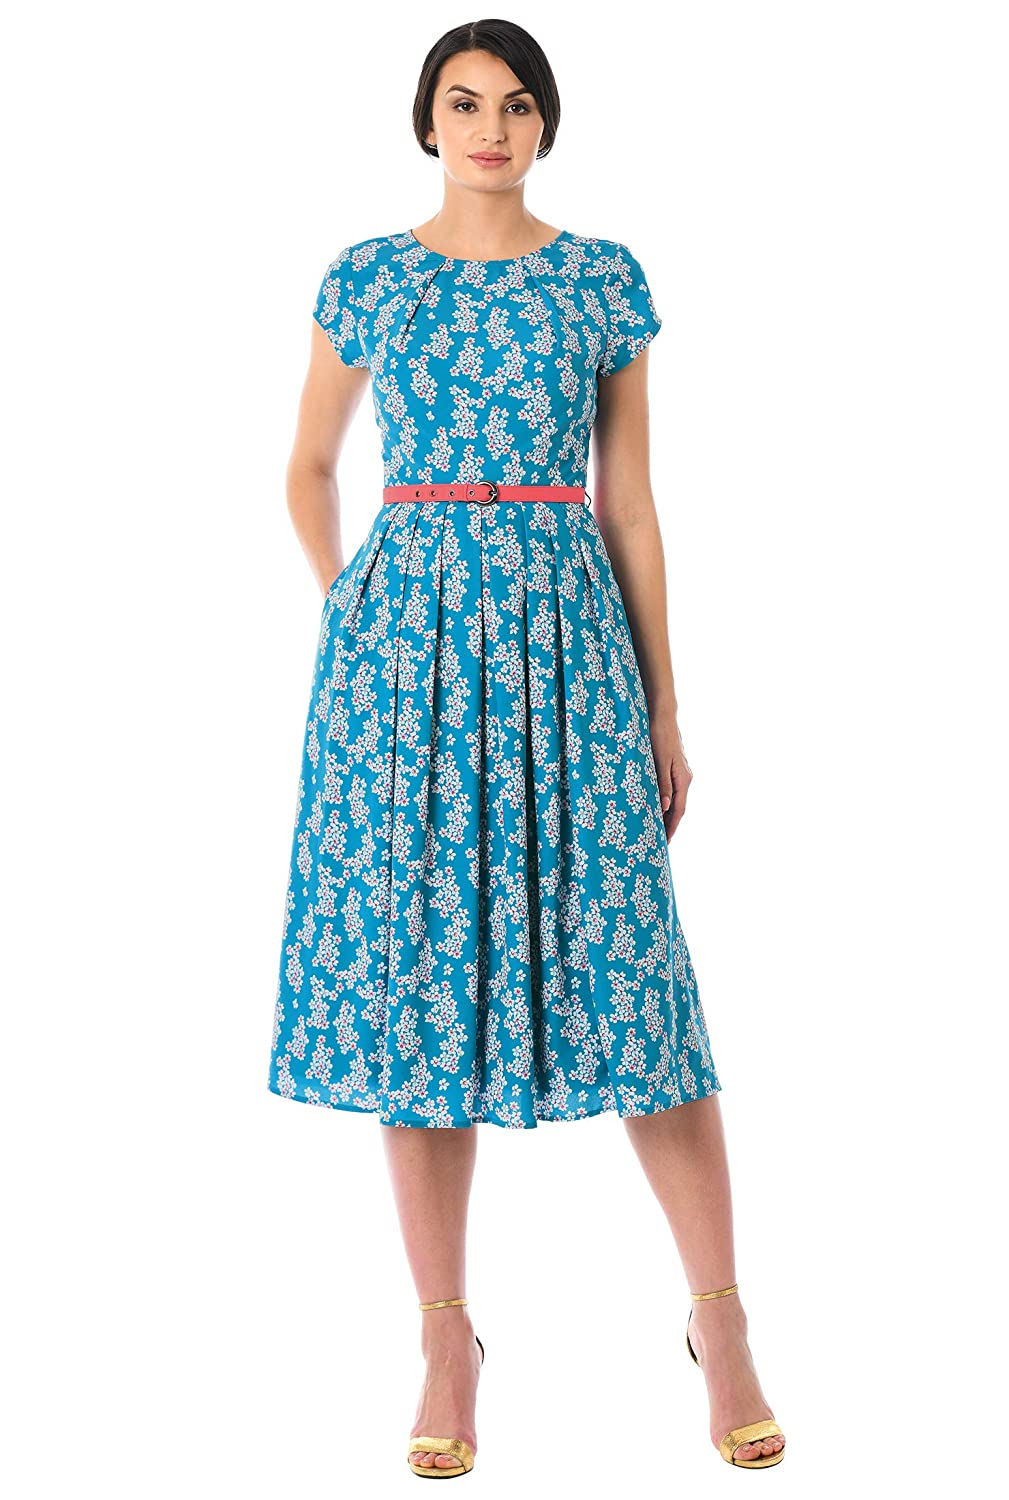 Vintage Tea Dresses, Floral Tea Dresses, Tea Length Dresses eShakti FX Pleat Neck Belted Floral Print Crepe Dress $64.95 AT vintagedancer.com